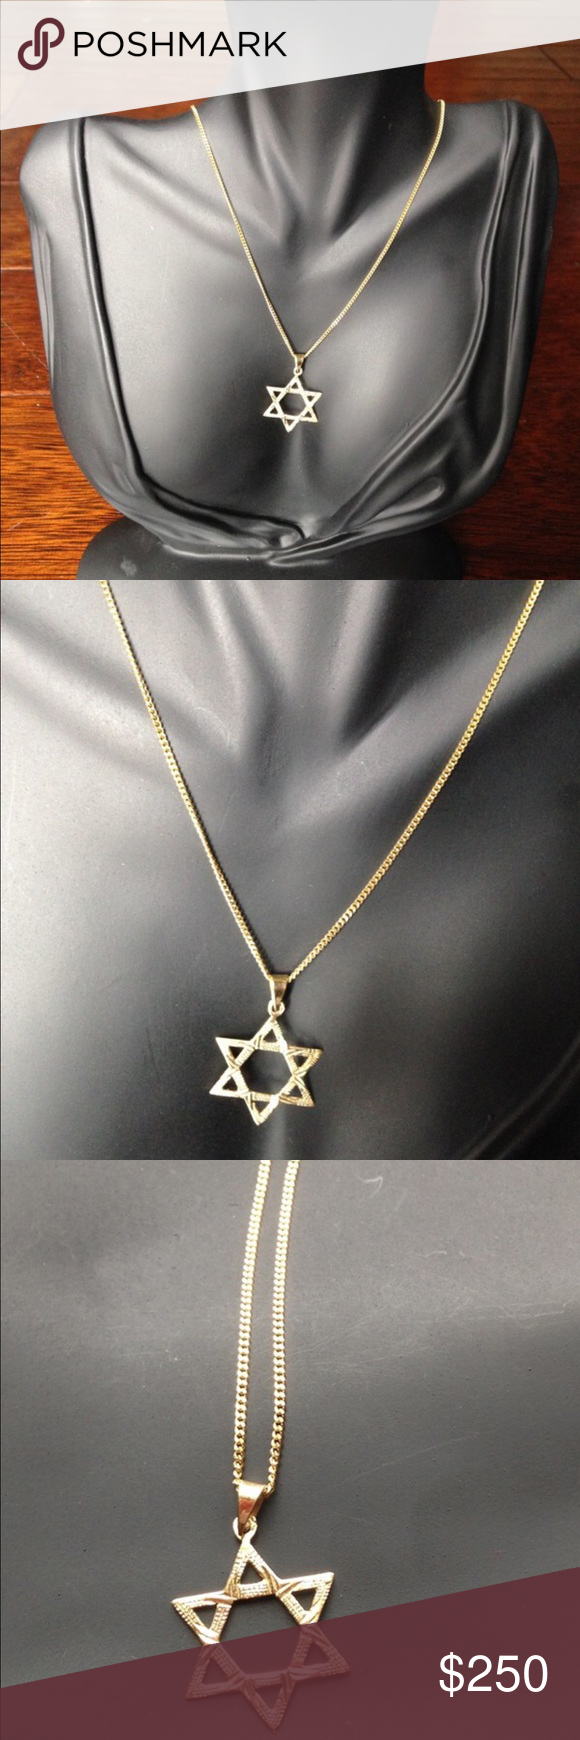 "14k Star of David Necklace Real gold Star of David necklace in a 20"" long chain. Sturdy necklace for everyday wear. Jewelry Necklaces"